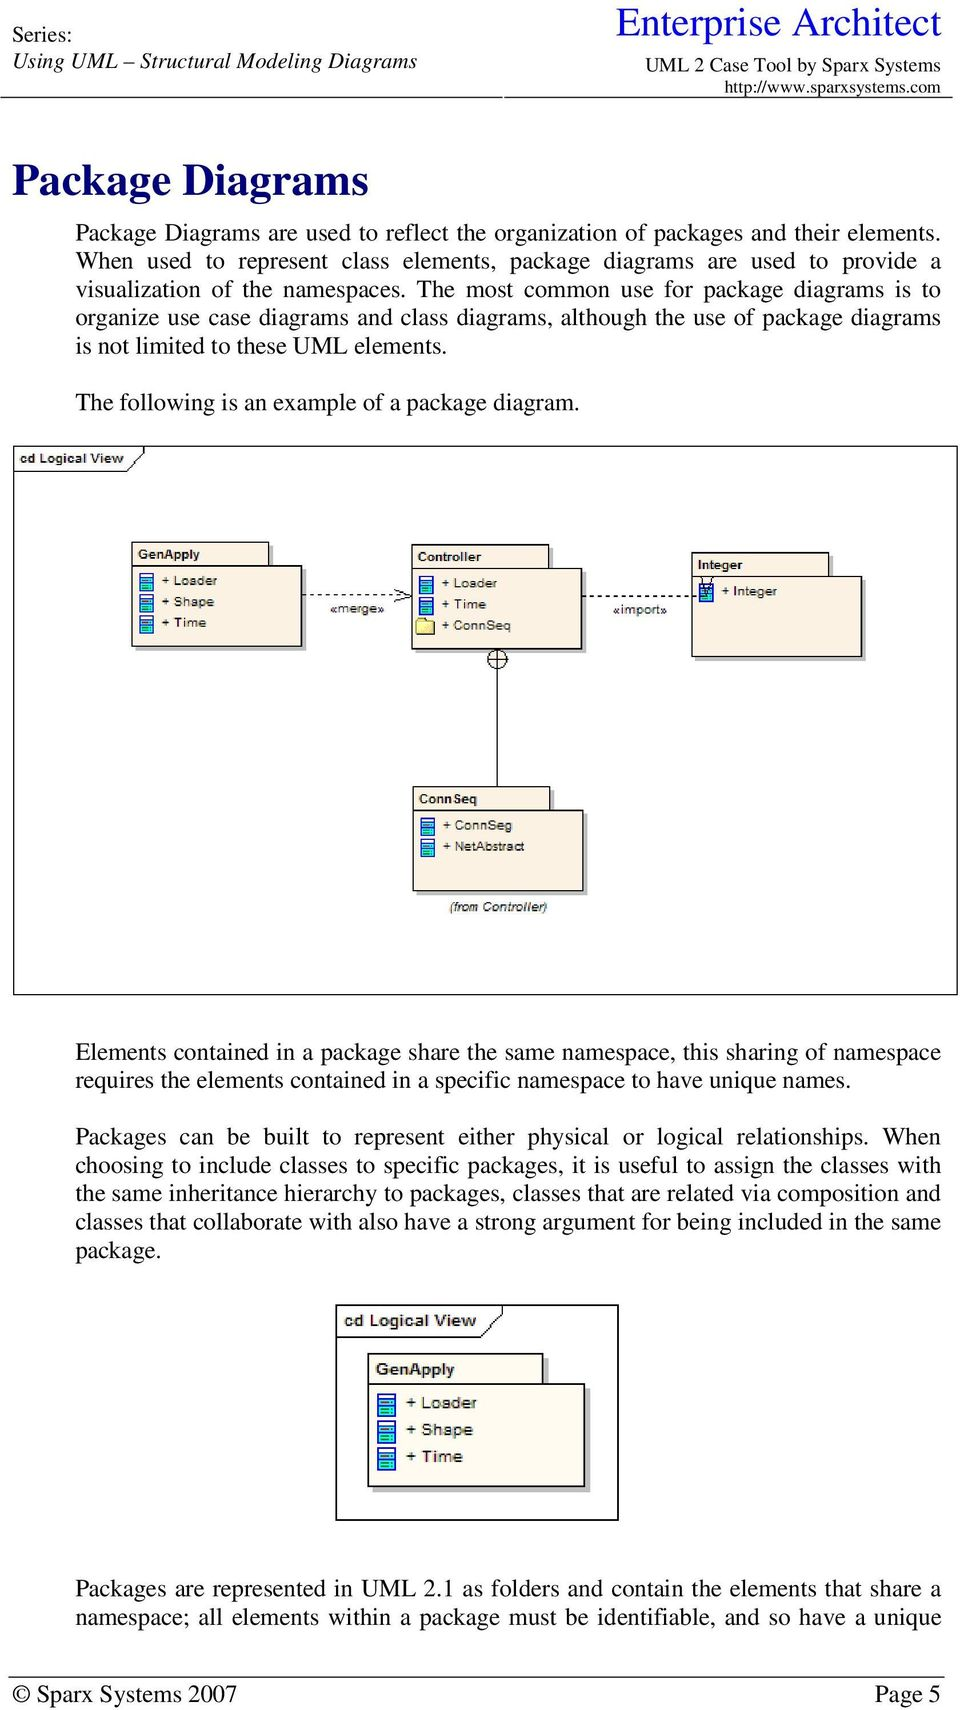 The most common use for package diagrams is to organize use case diagrams and class diagrams, although the use of package diagrams is not limited to these UML elements.